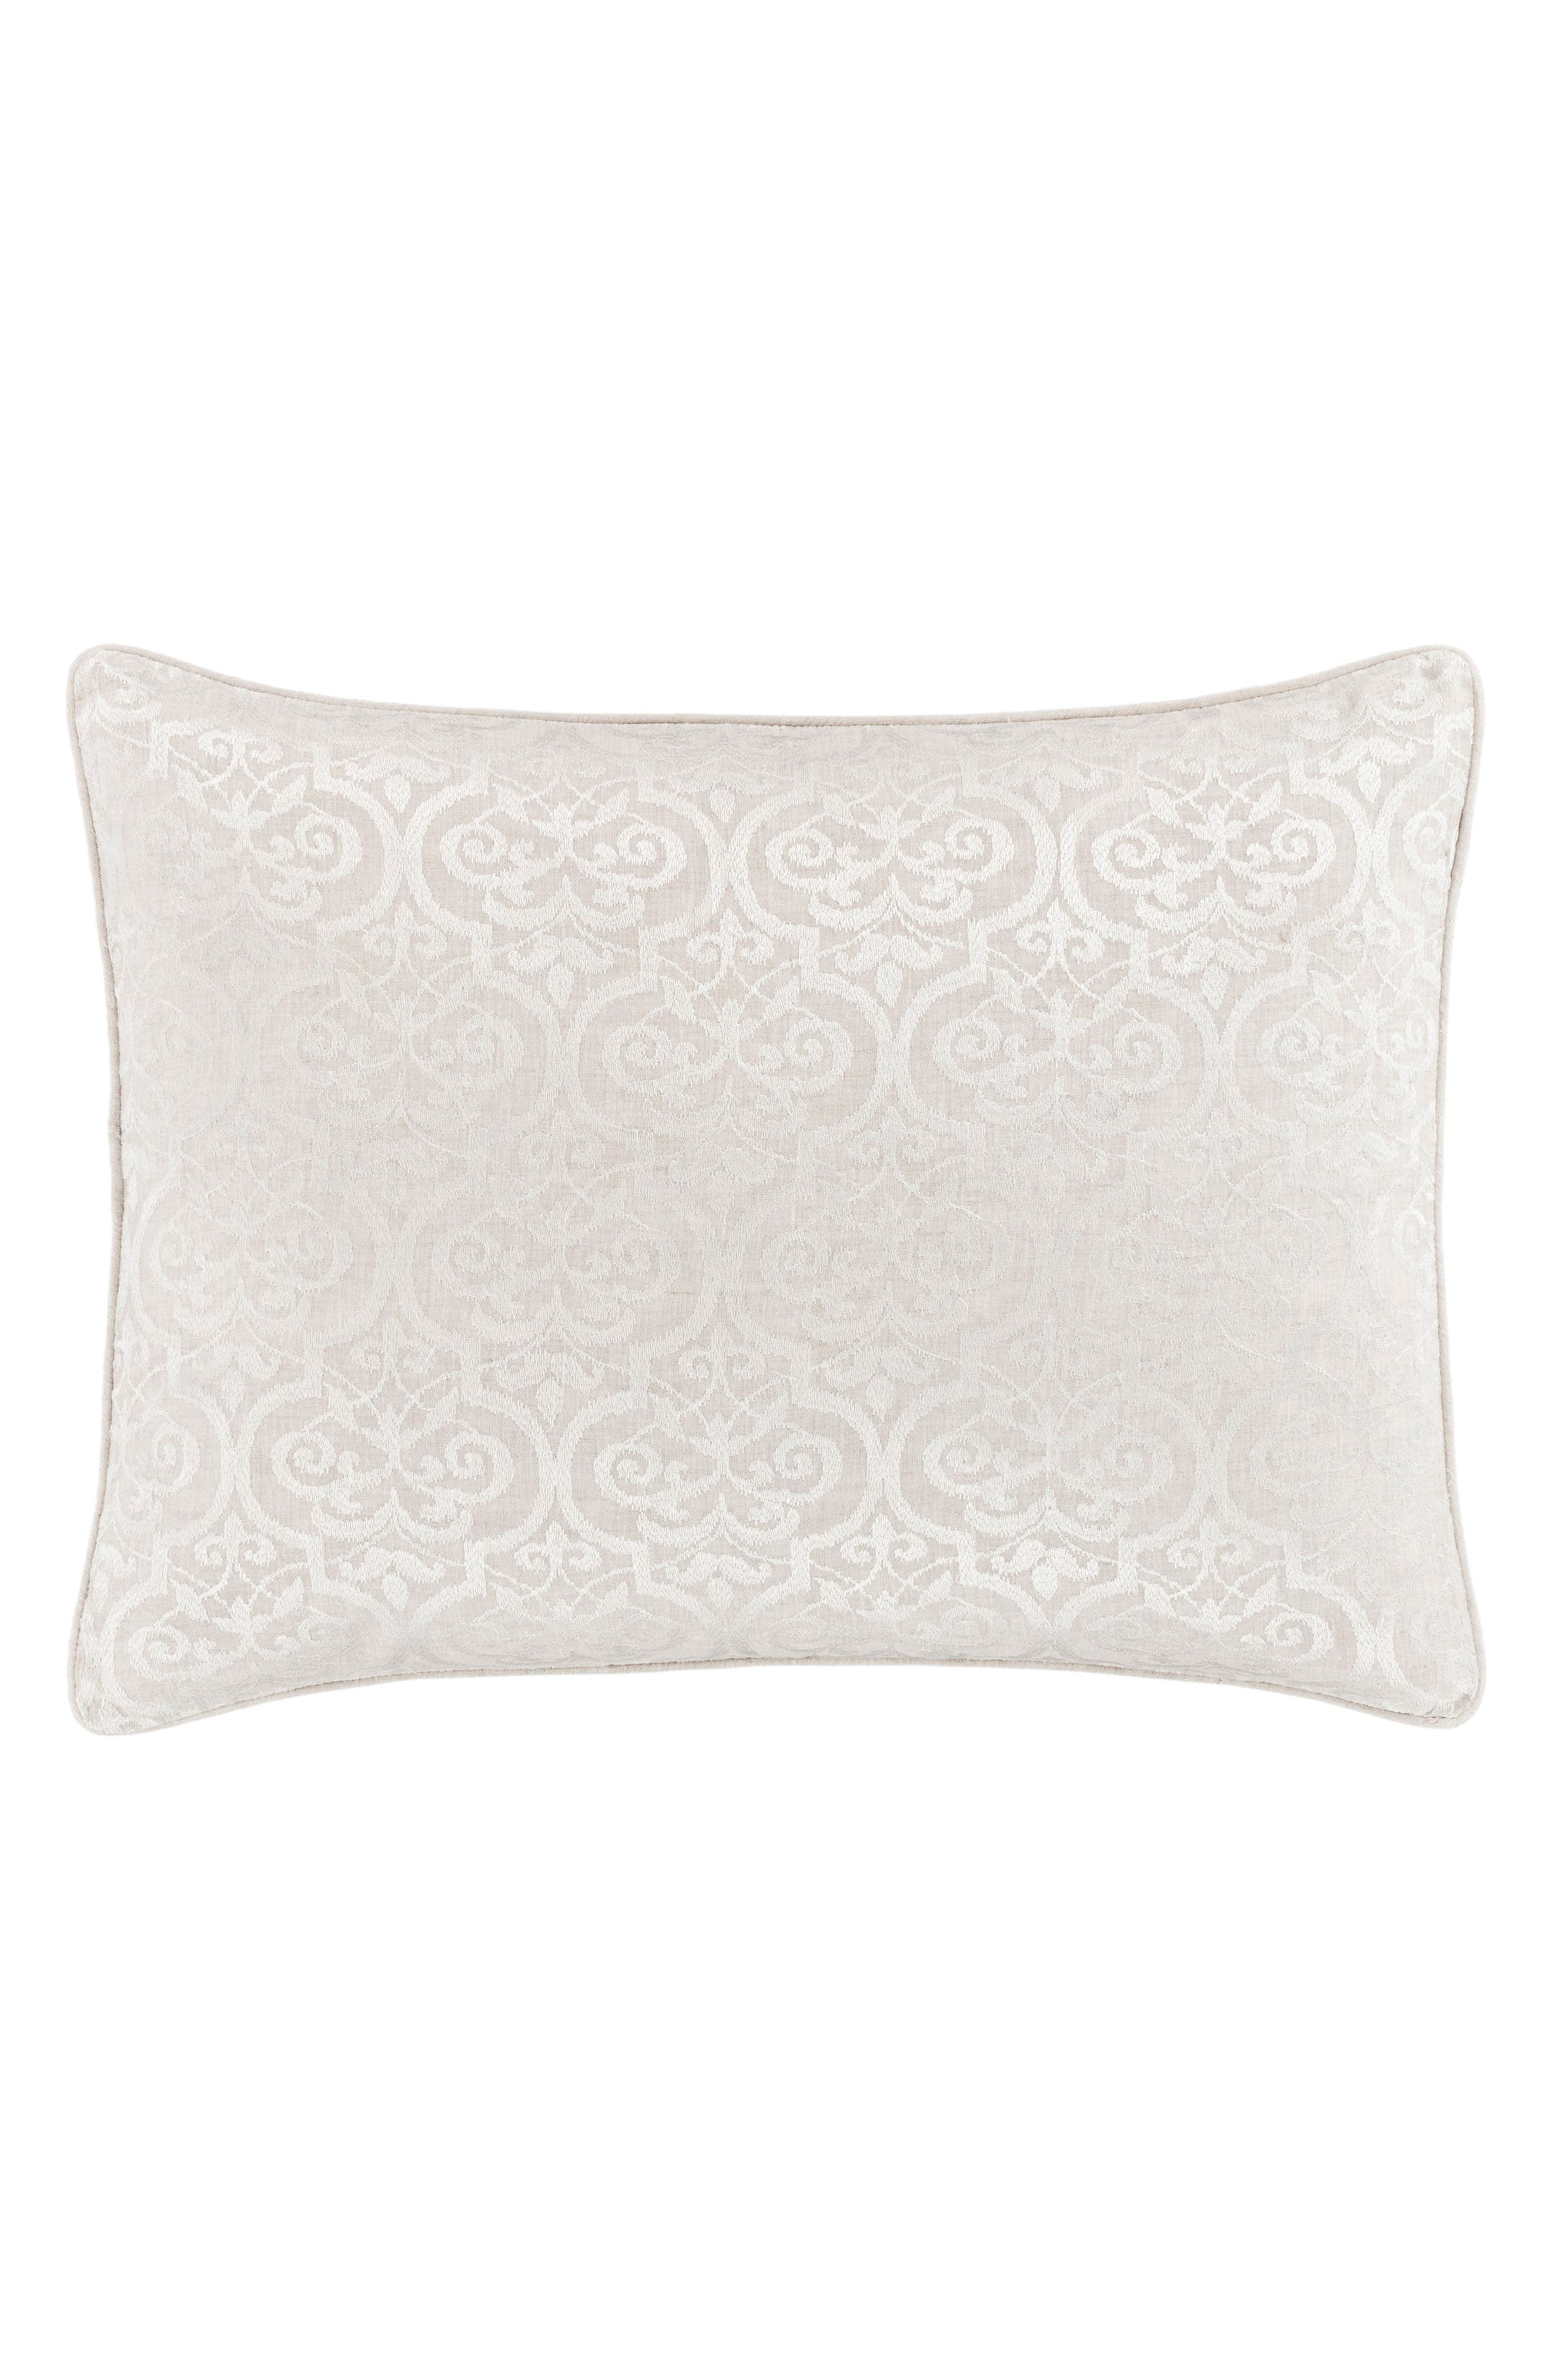 Gwendolyn Embroidered Linen Sham,                         Main,                         color, 100